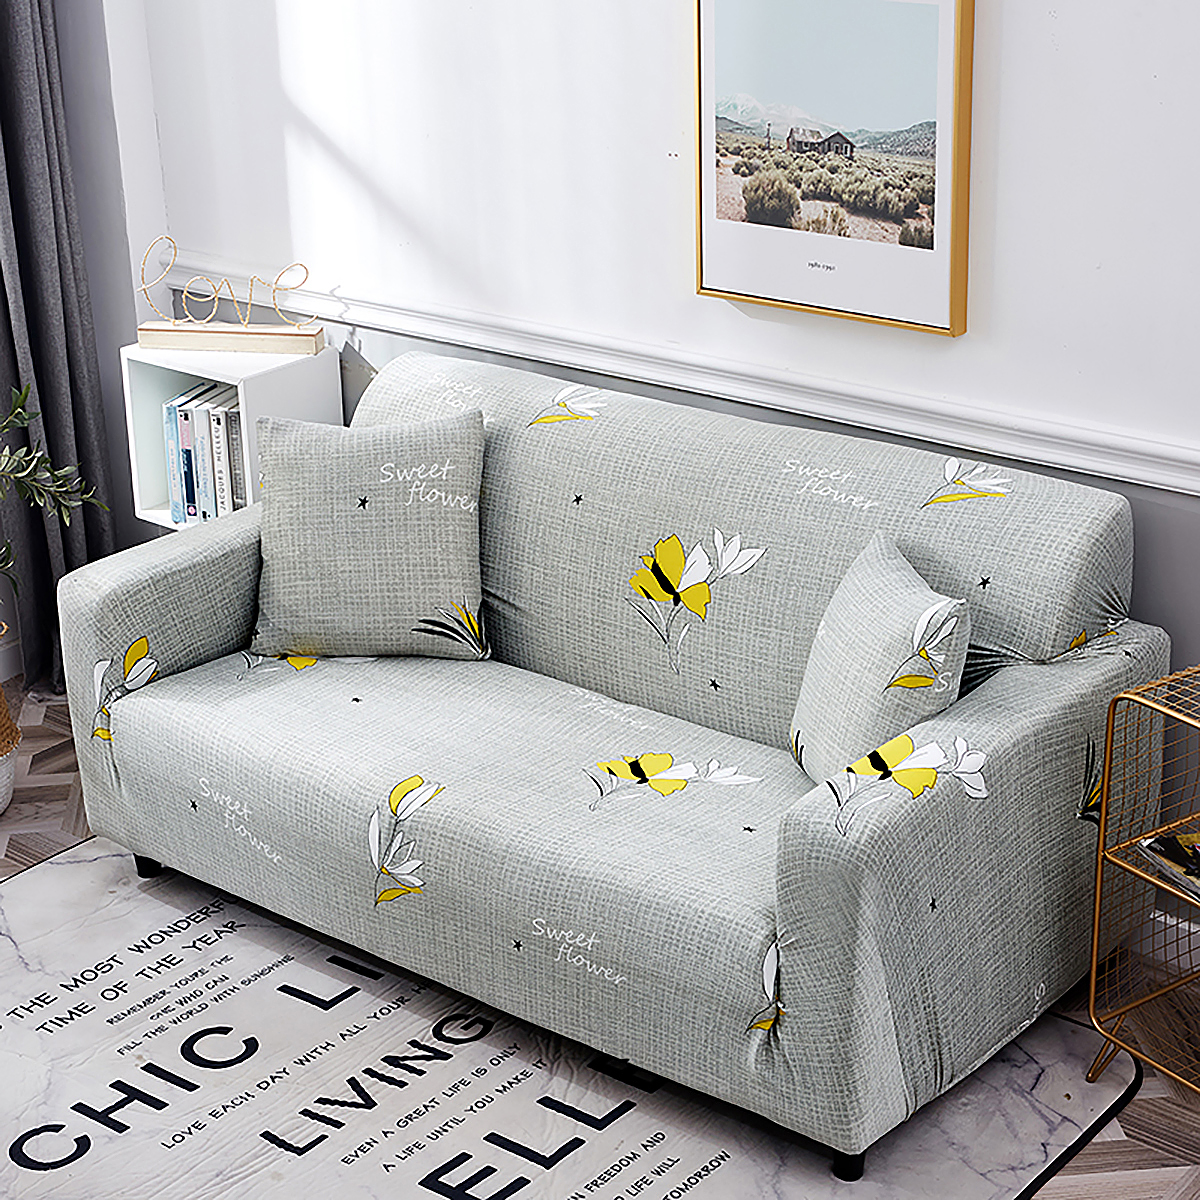 1-2-3-4-SEATER-SOFA-COVERS-Elastic-Fabric-Loveseat-Couch-Settee-Slipcover miniatuur 14